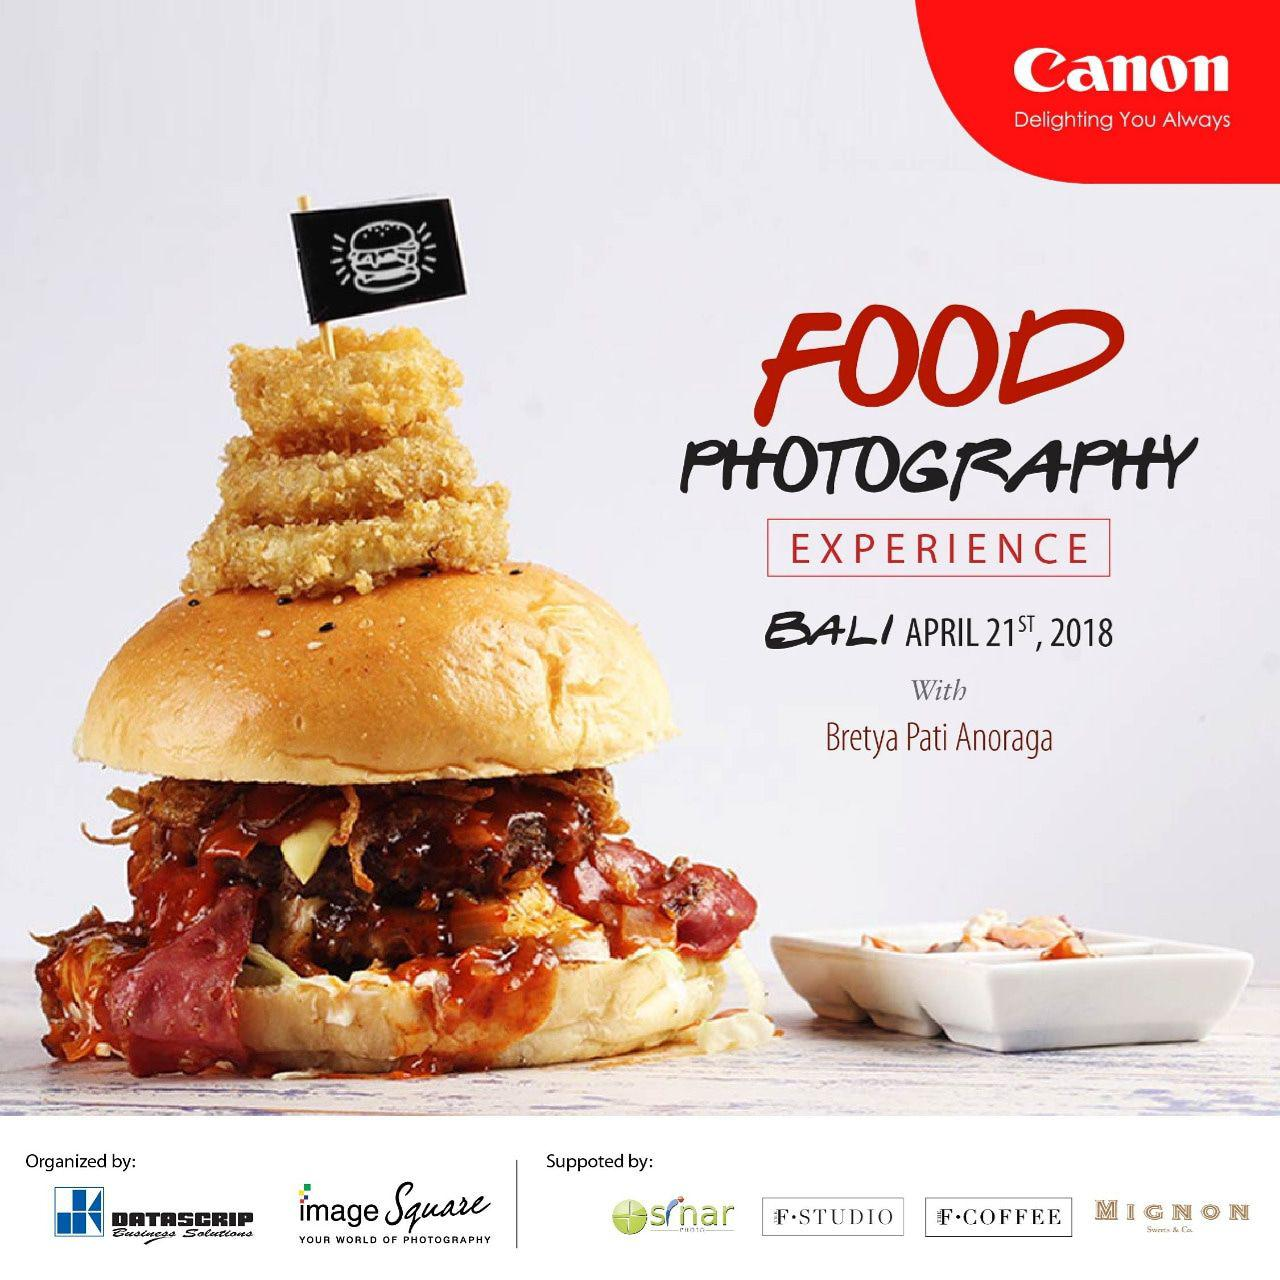 Food Photography Experience - Bali 2018